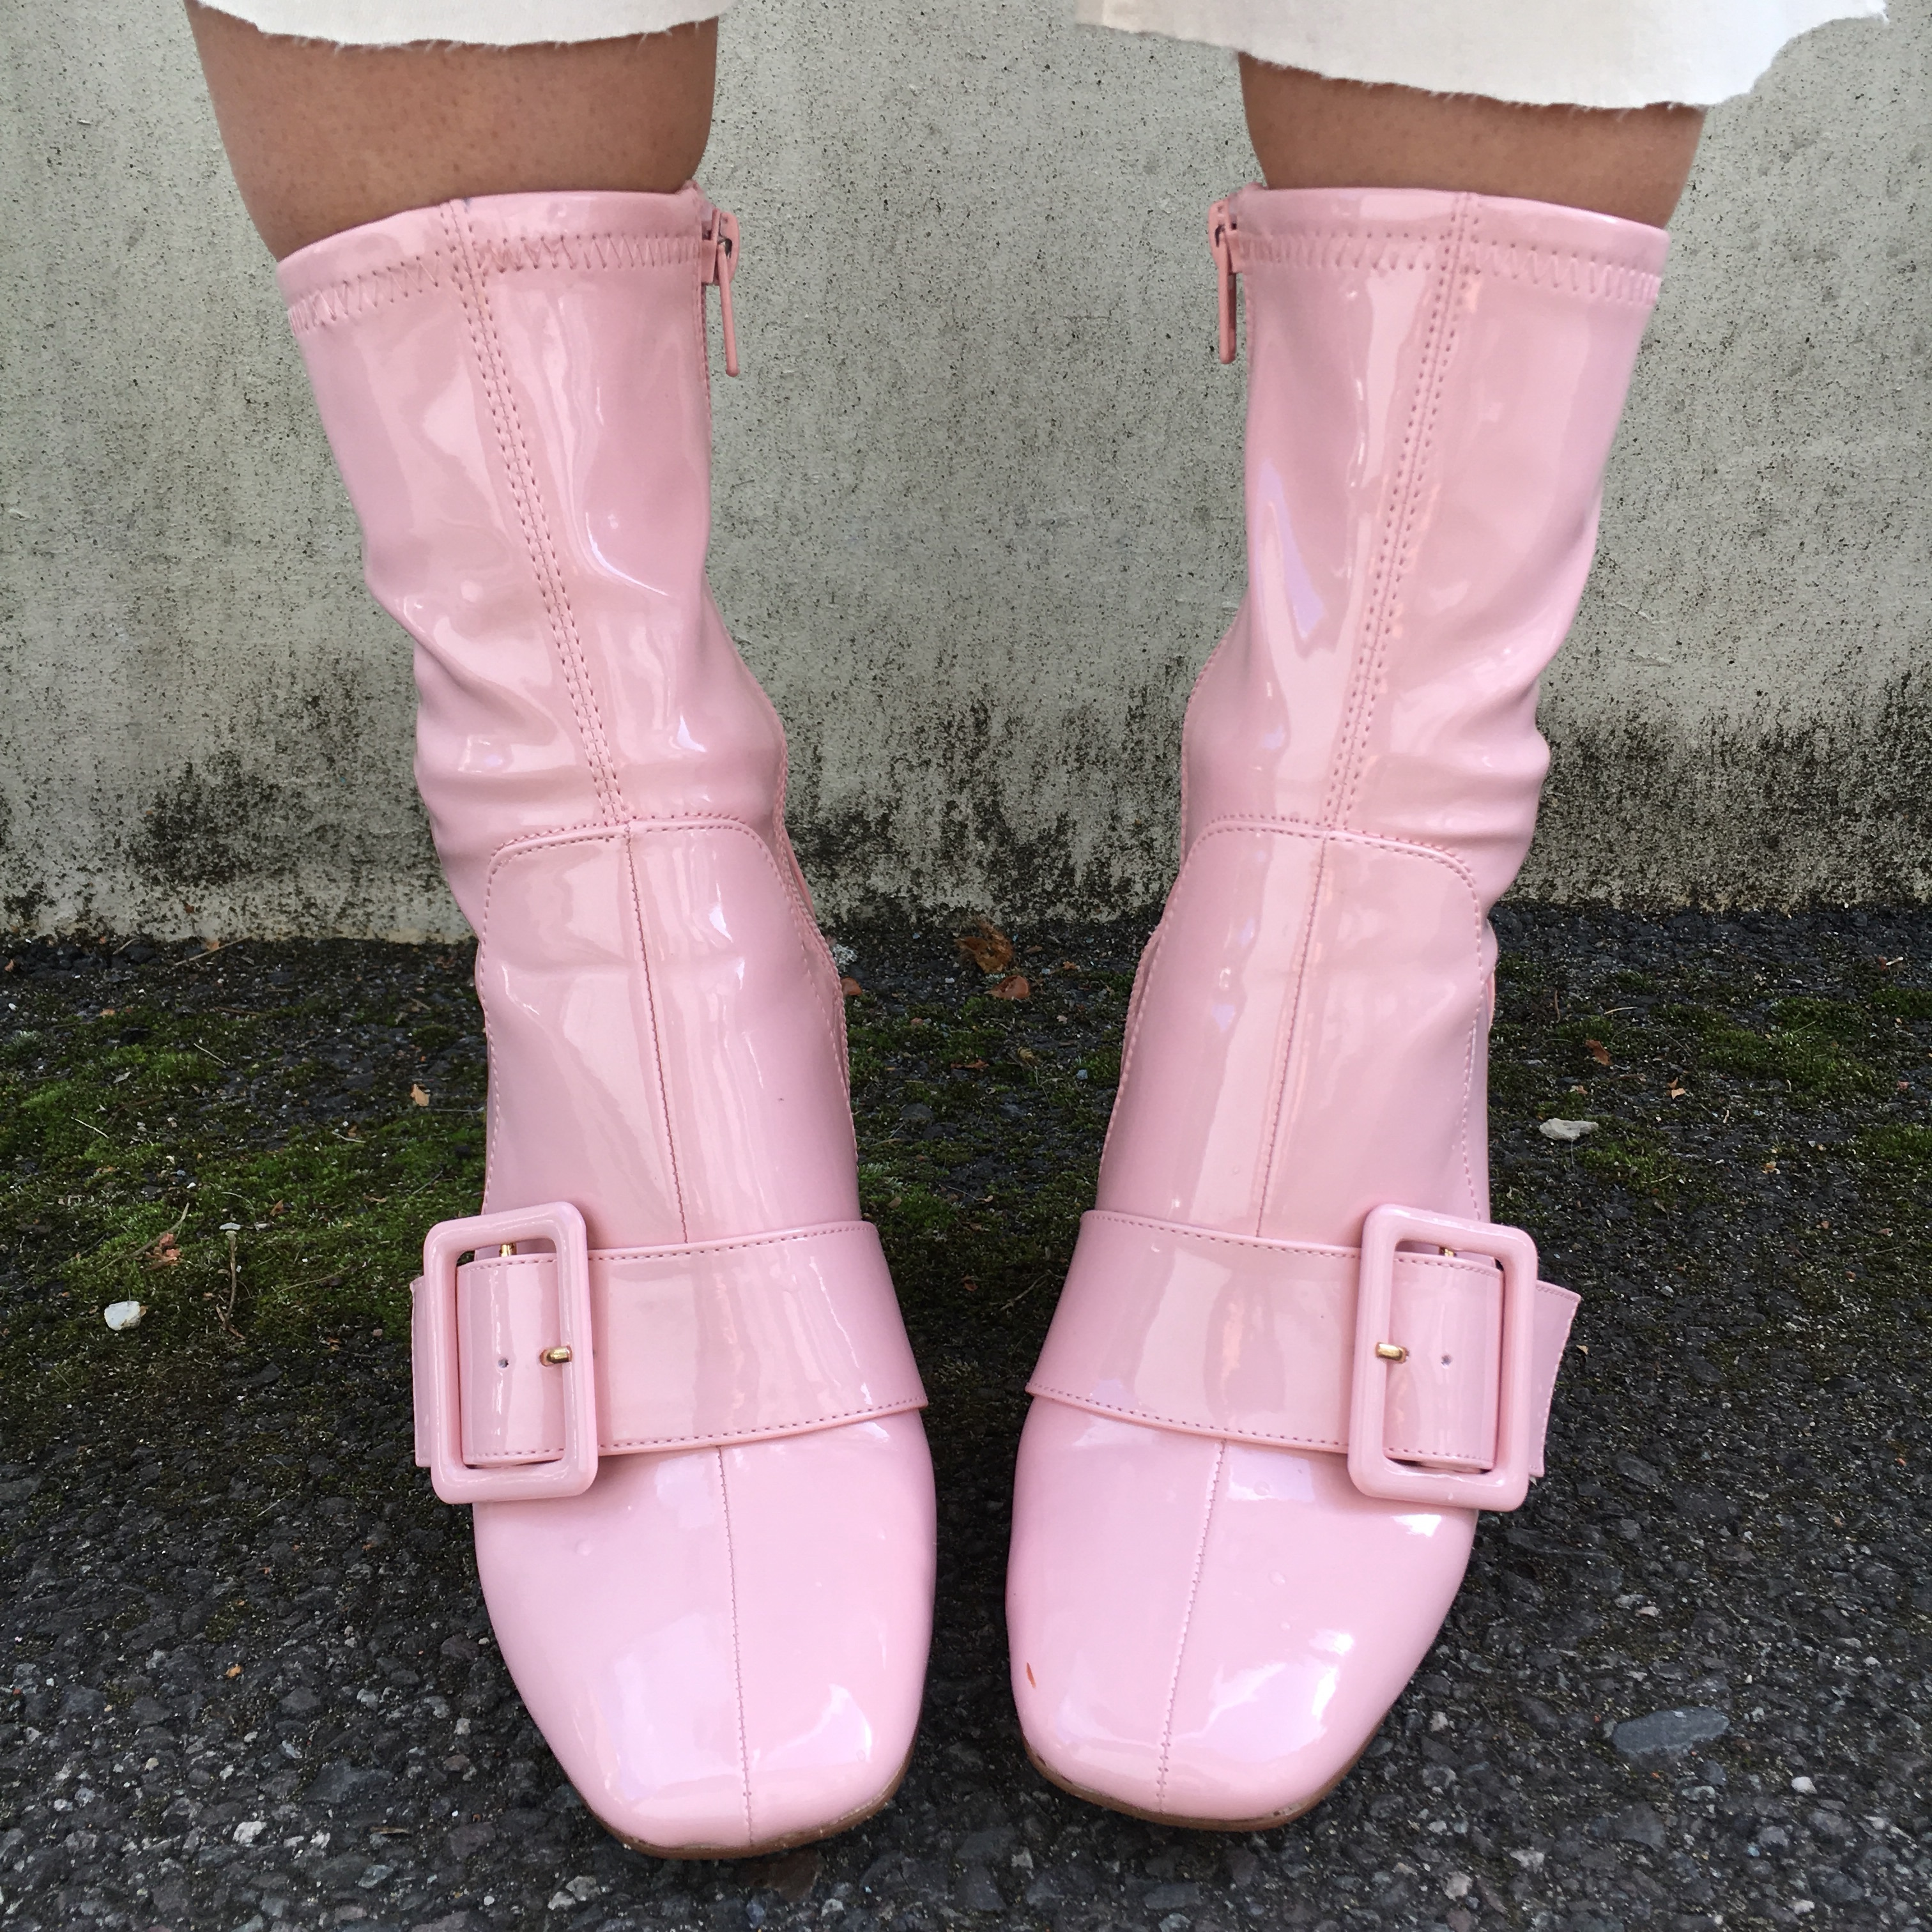 River Island pink patent heeled ankle